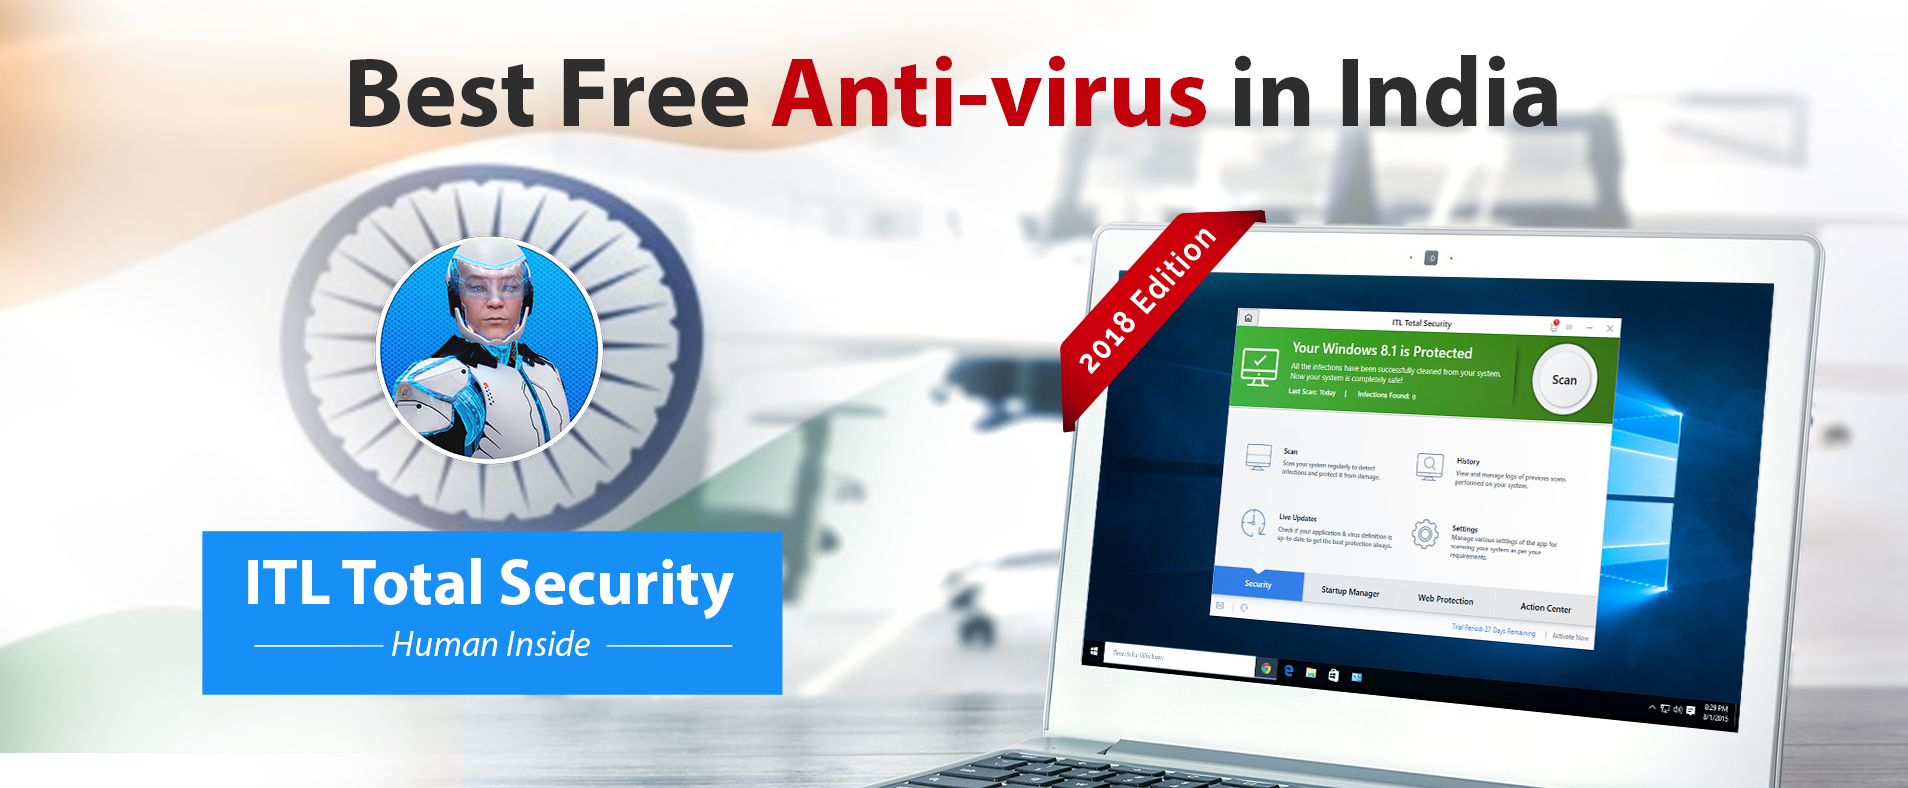 Best free Antivirus of 2018 in India | ITL Total Security Antivirus